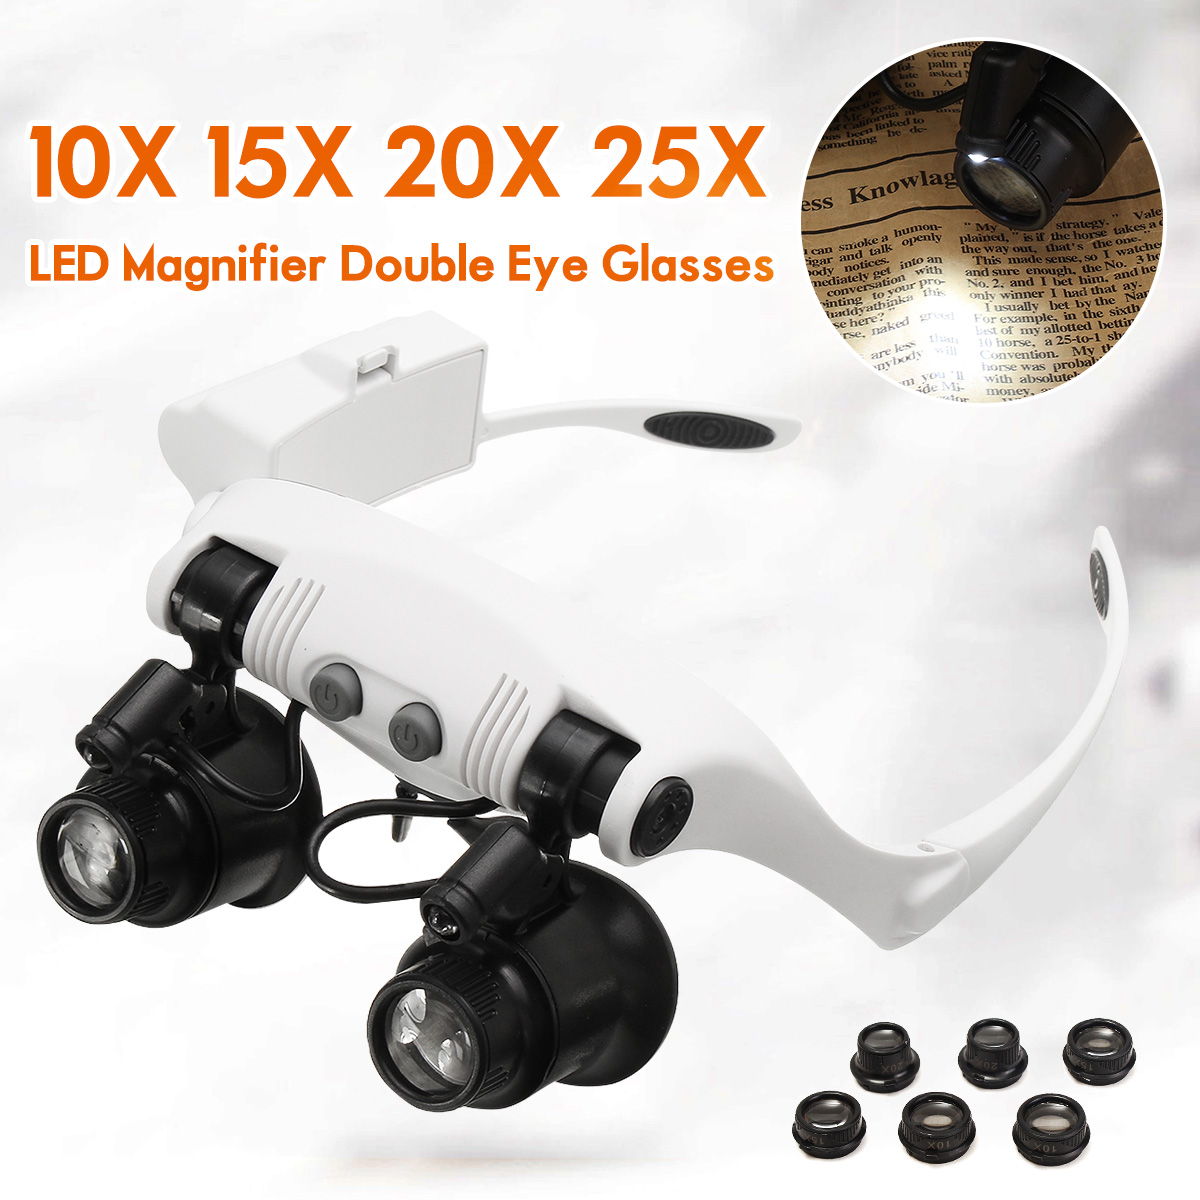 LED Lamp 10X 15X 20X 25X LED Magnifiers Double Eye Glasses Loupe Lens Jeweler Watch Repair Measurement 20-50mm with 8 Lens magnifier 10x 15x 20x 25x led double eye glasses loupe lens jeweler watch repair measurement with 8 lens